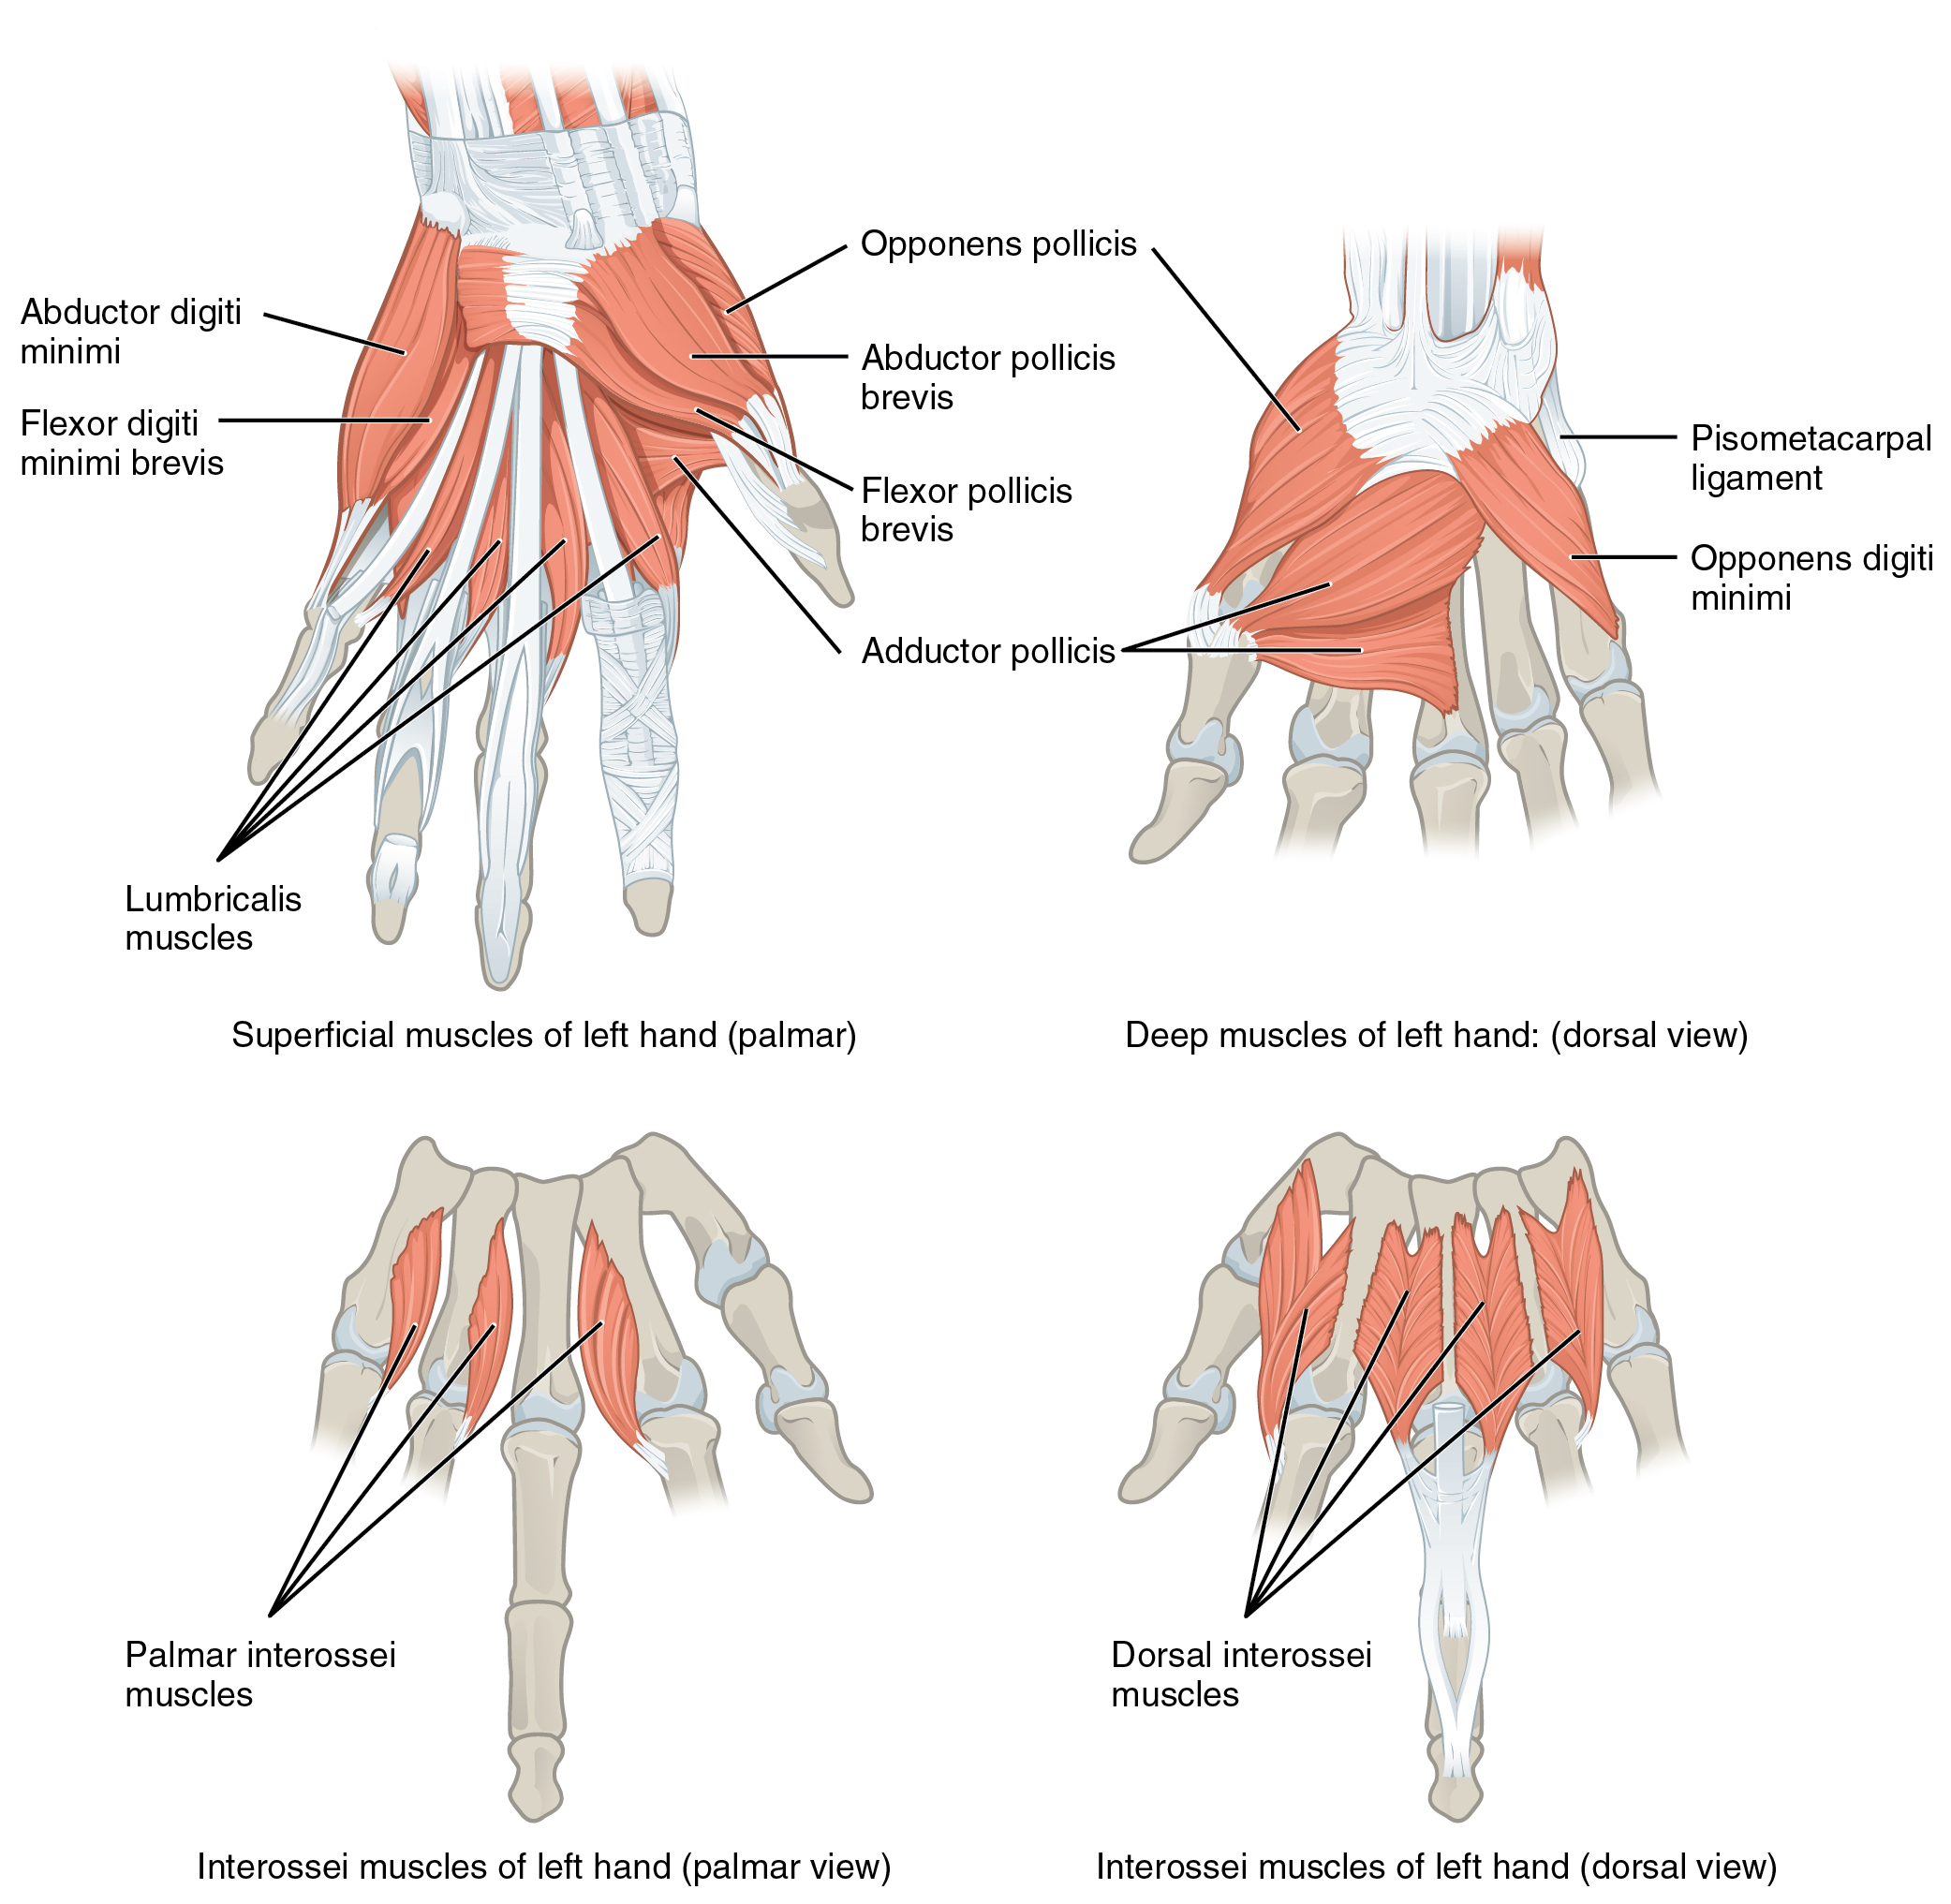 This multipart figure shows the intrinsic muscles of the hand with the major muscle groups labeled.